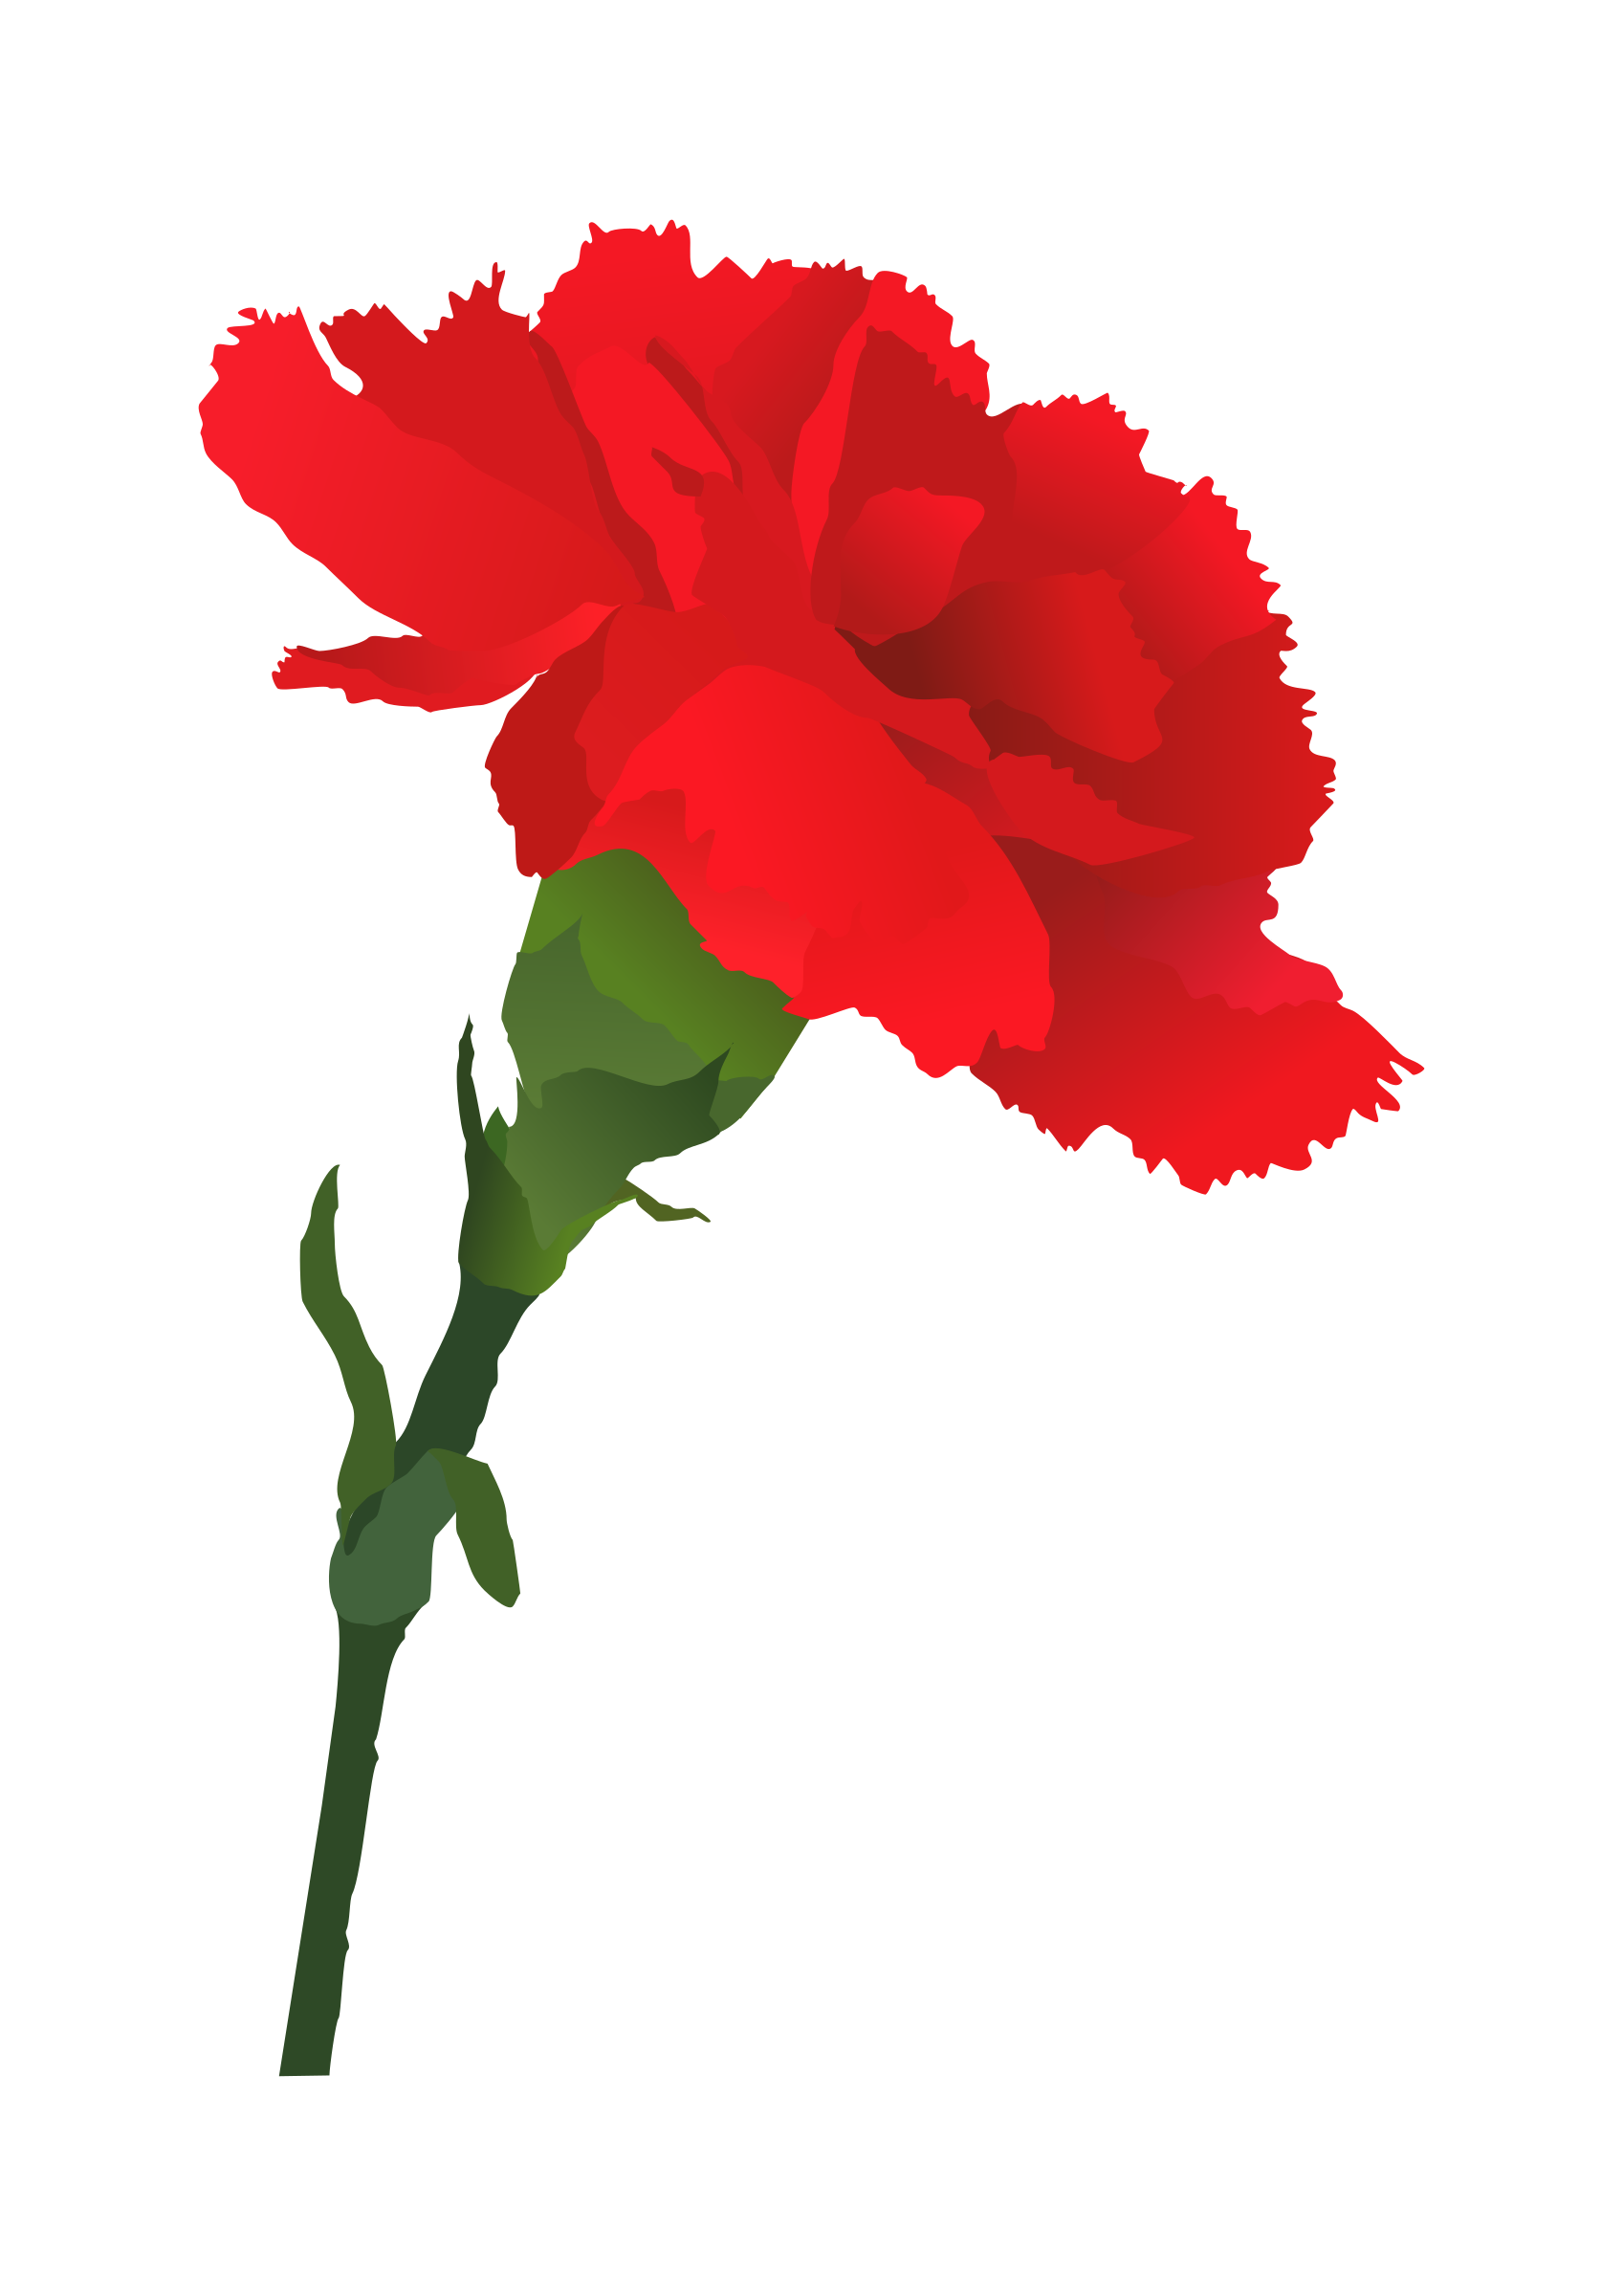 Dianthus clipart #9, Download drawings